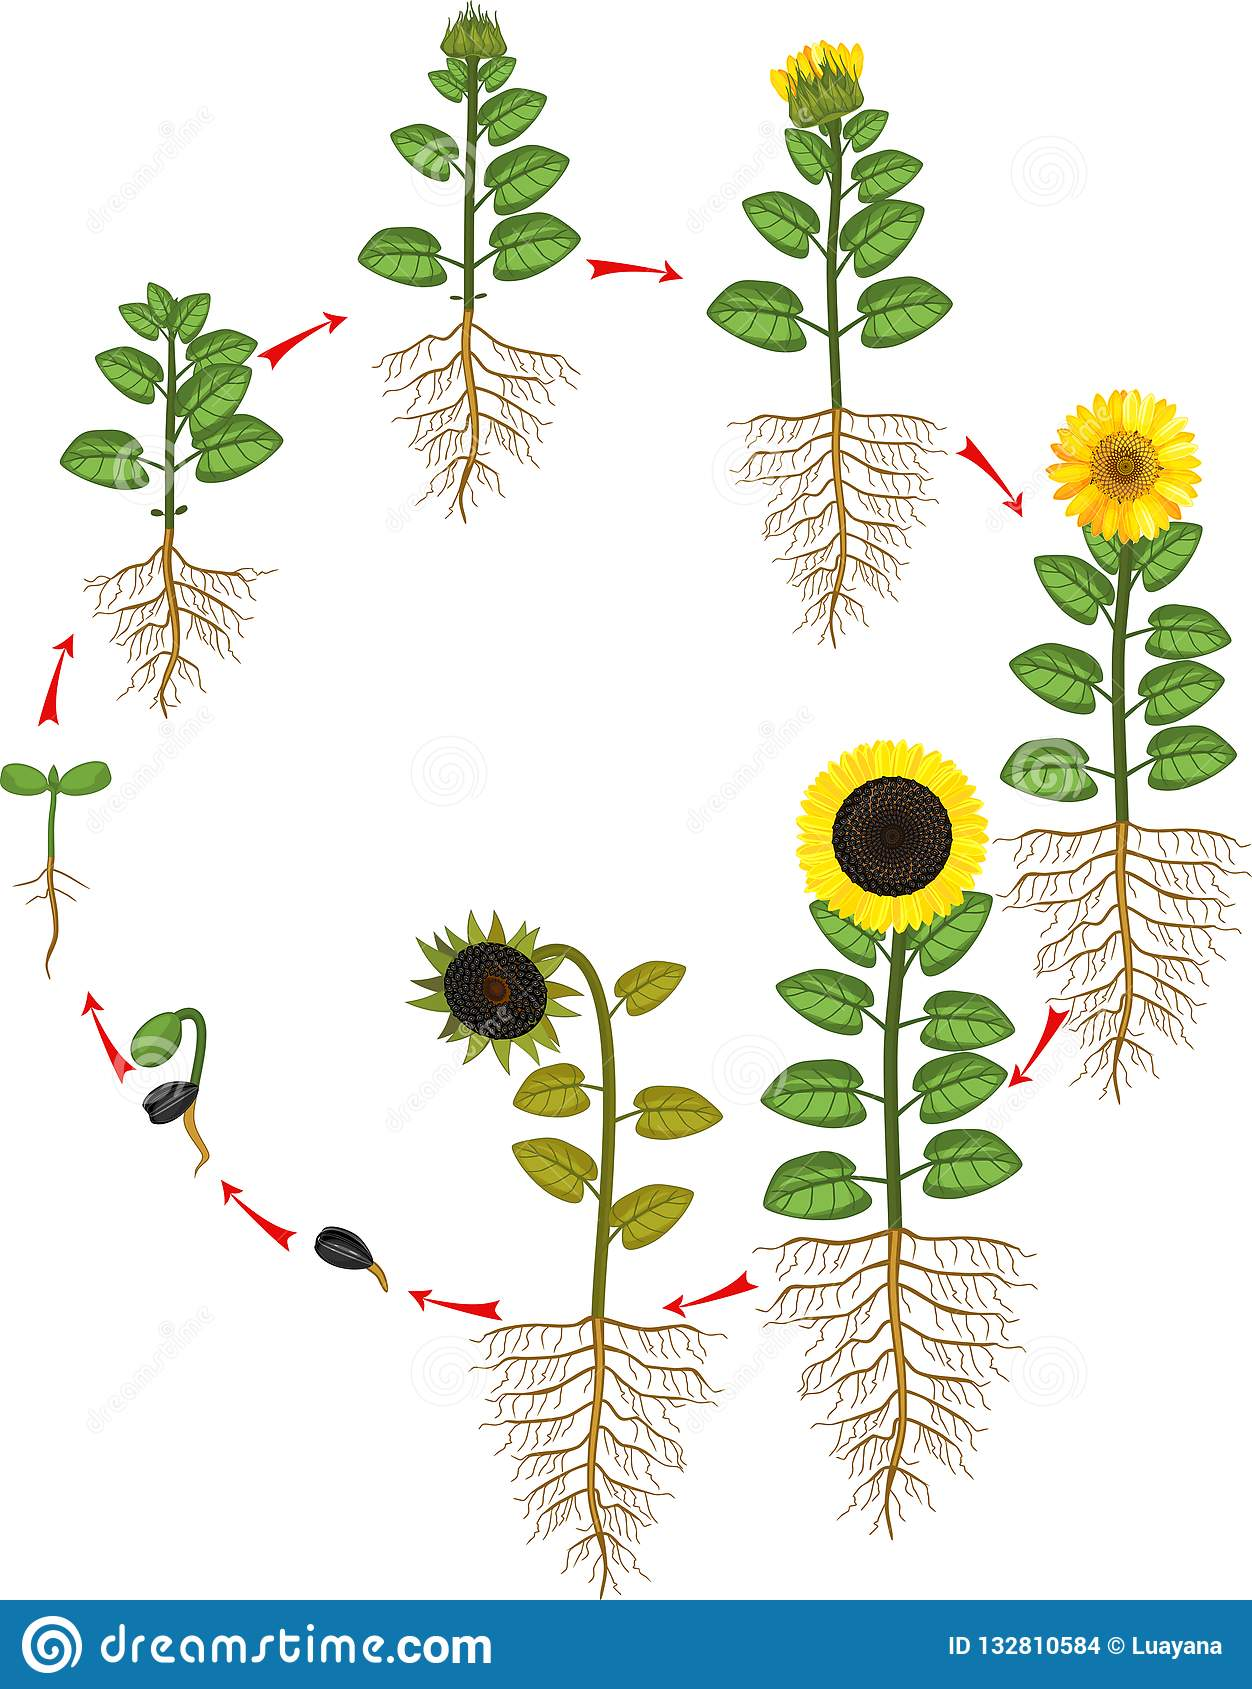 Sunflower Life Cycle Growth Stages From Seed To Flowering